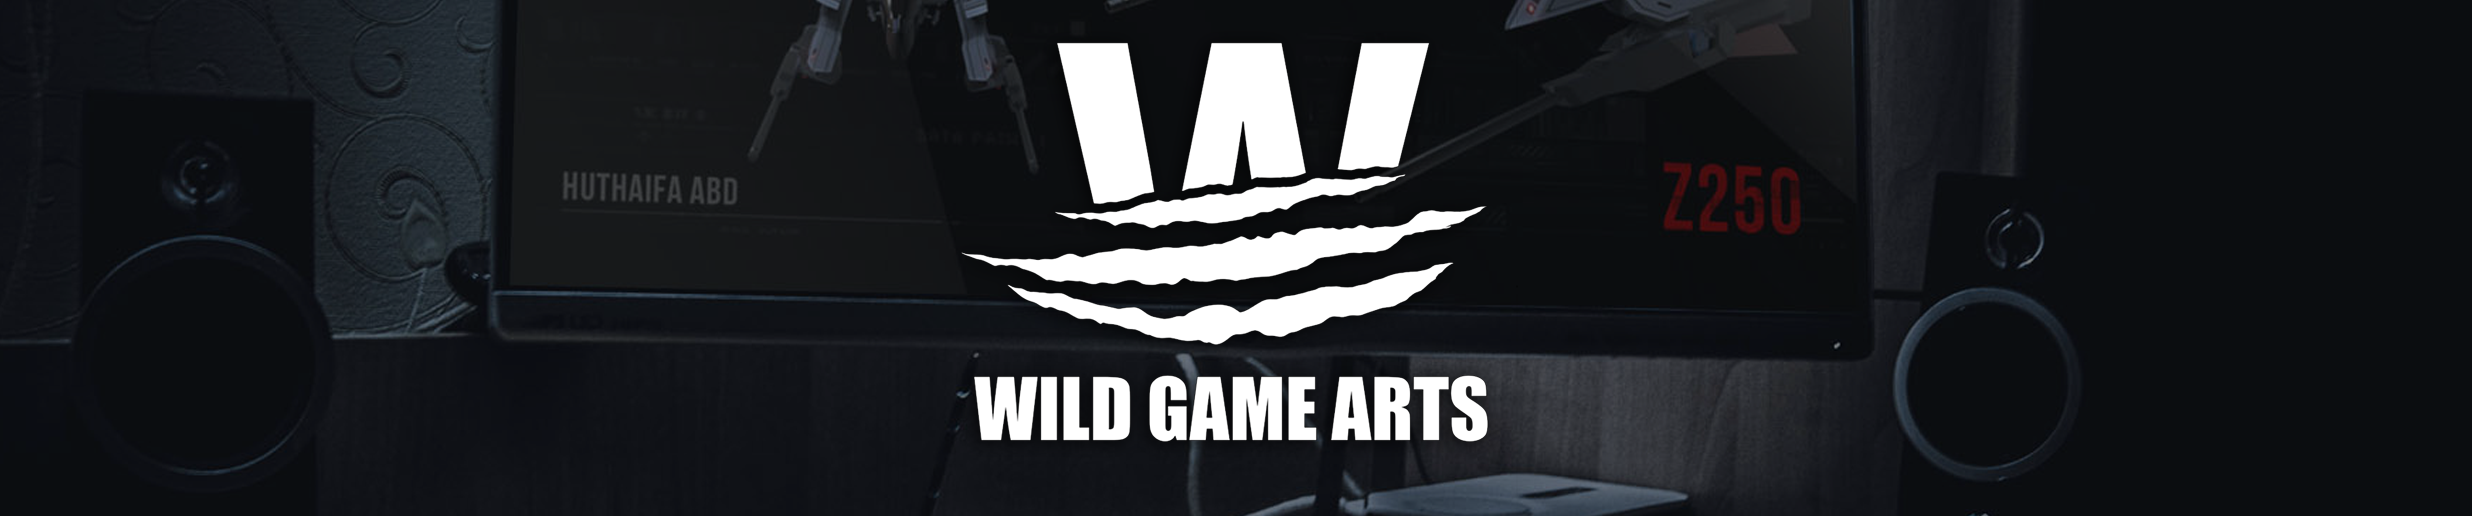 PageCover Wild Game Arts